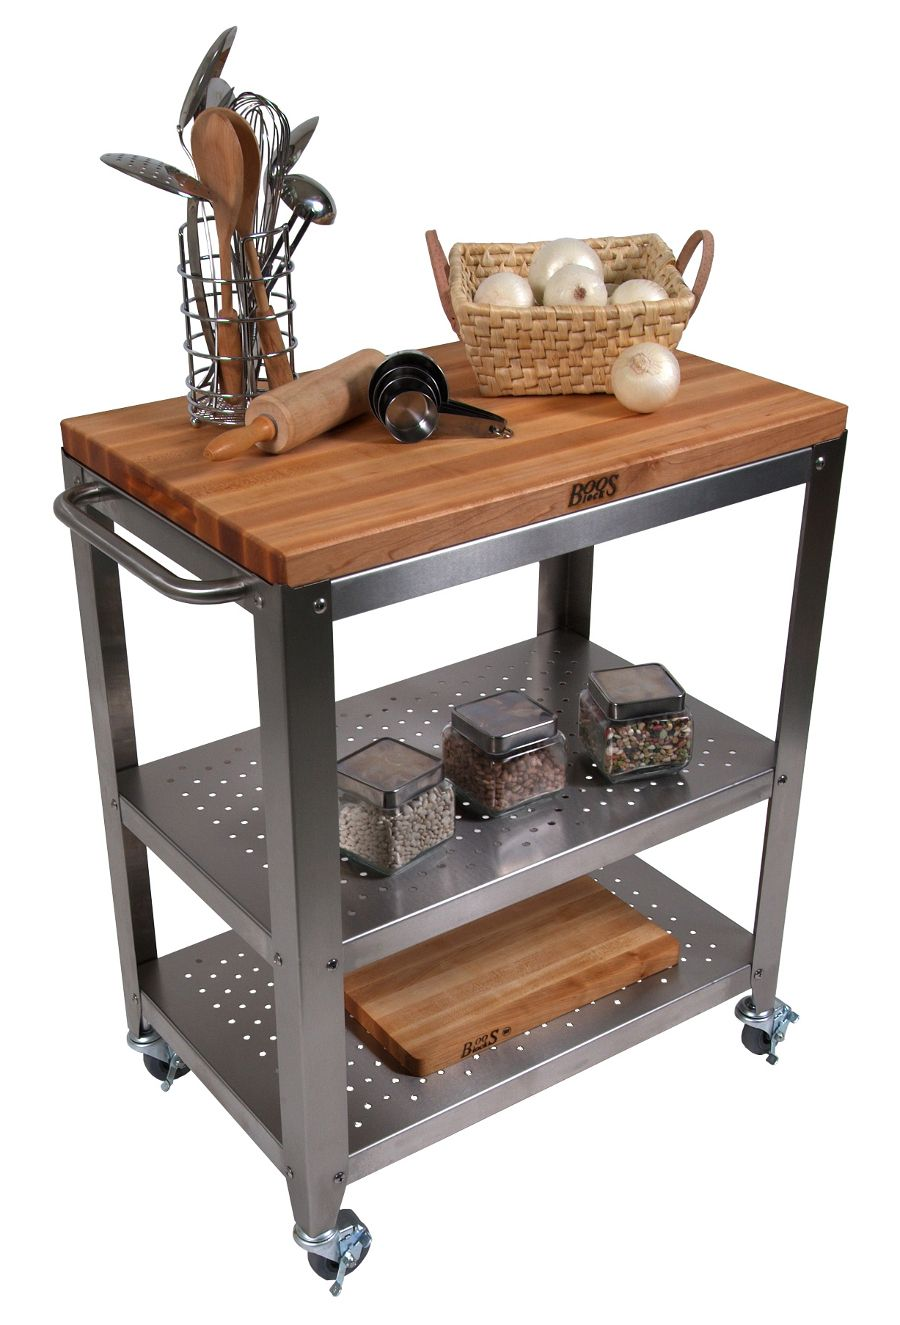 Boos Cucina Culinarte Cart U2013 Removable Butcher Block Top At  Http://butcherblockco.